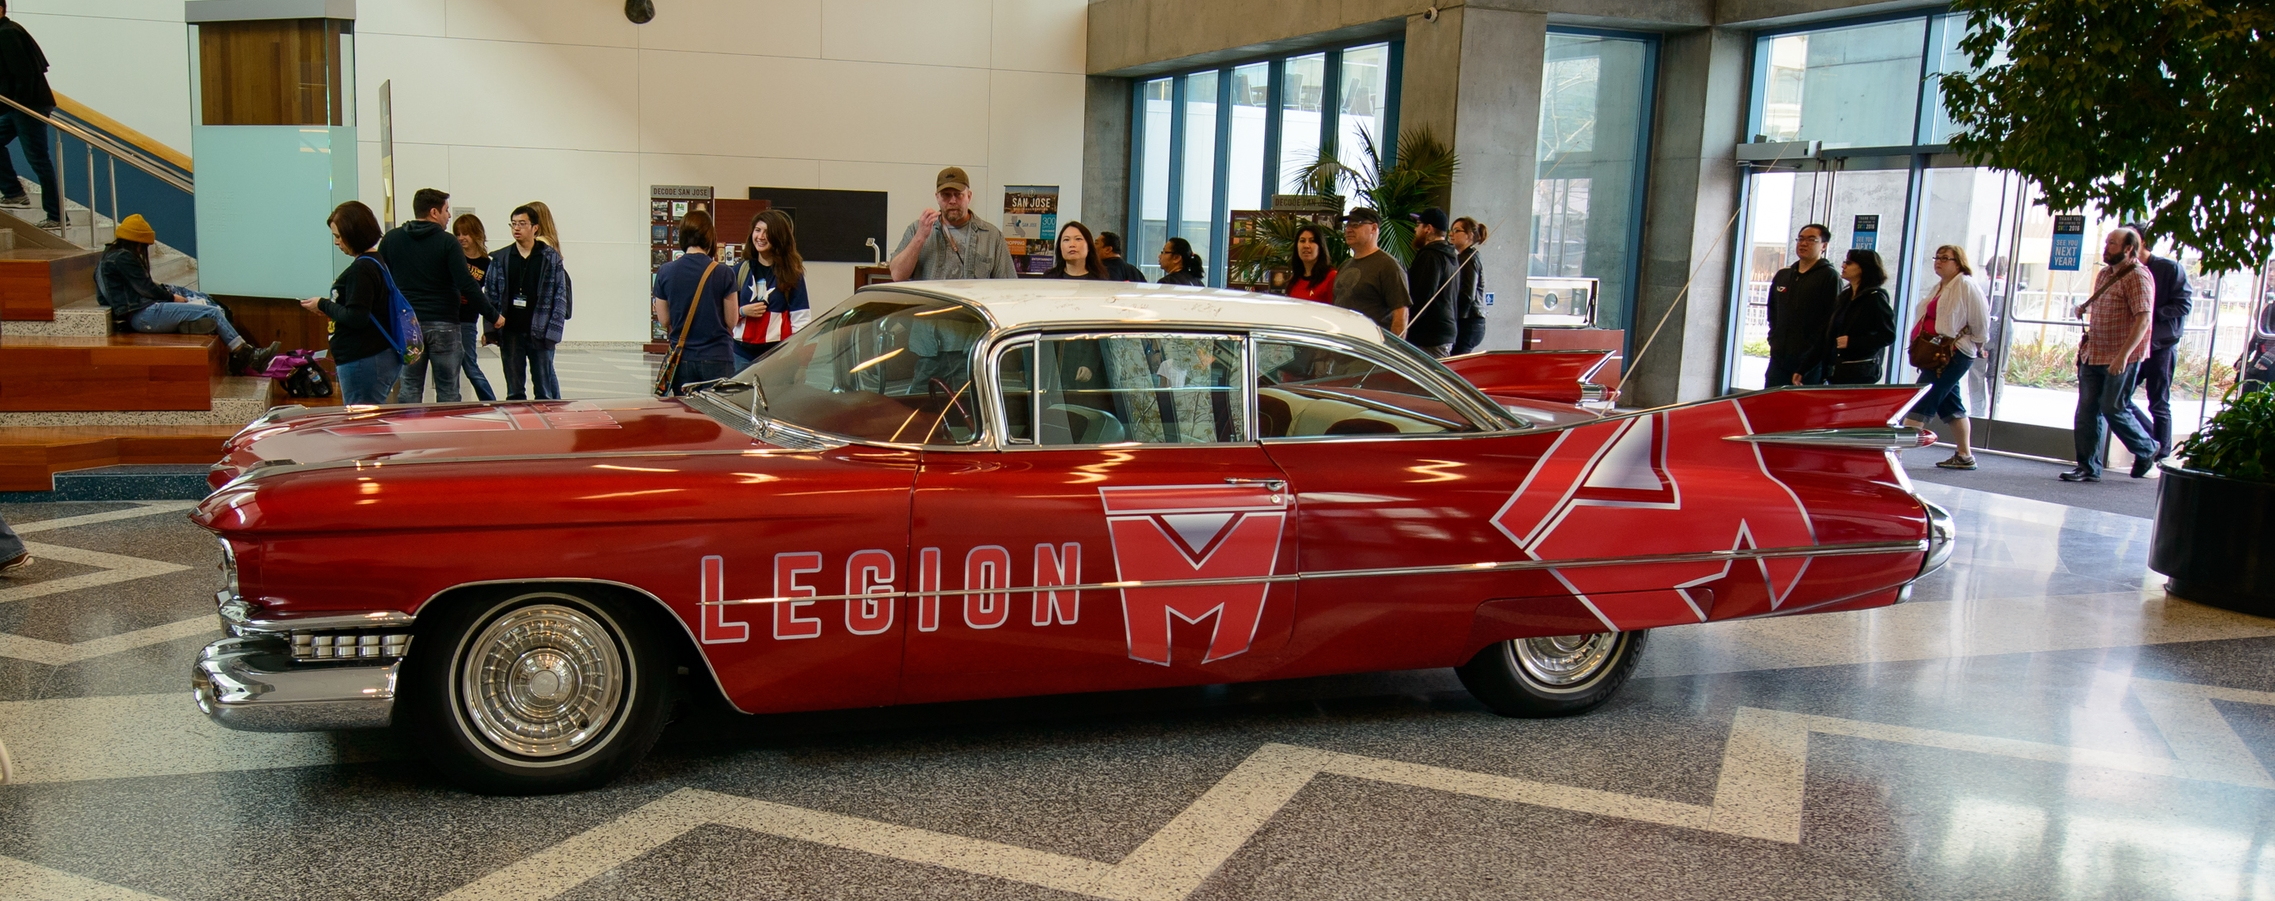 At the show, we unveiled the Legion M company car, Marilyn. She was the first thing you saw when you entered,and the last thing you saw before you left!